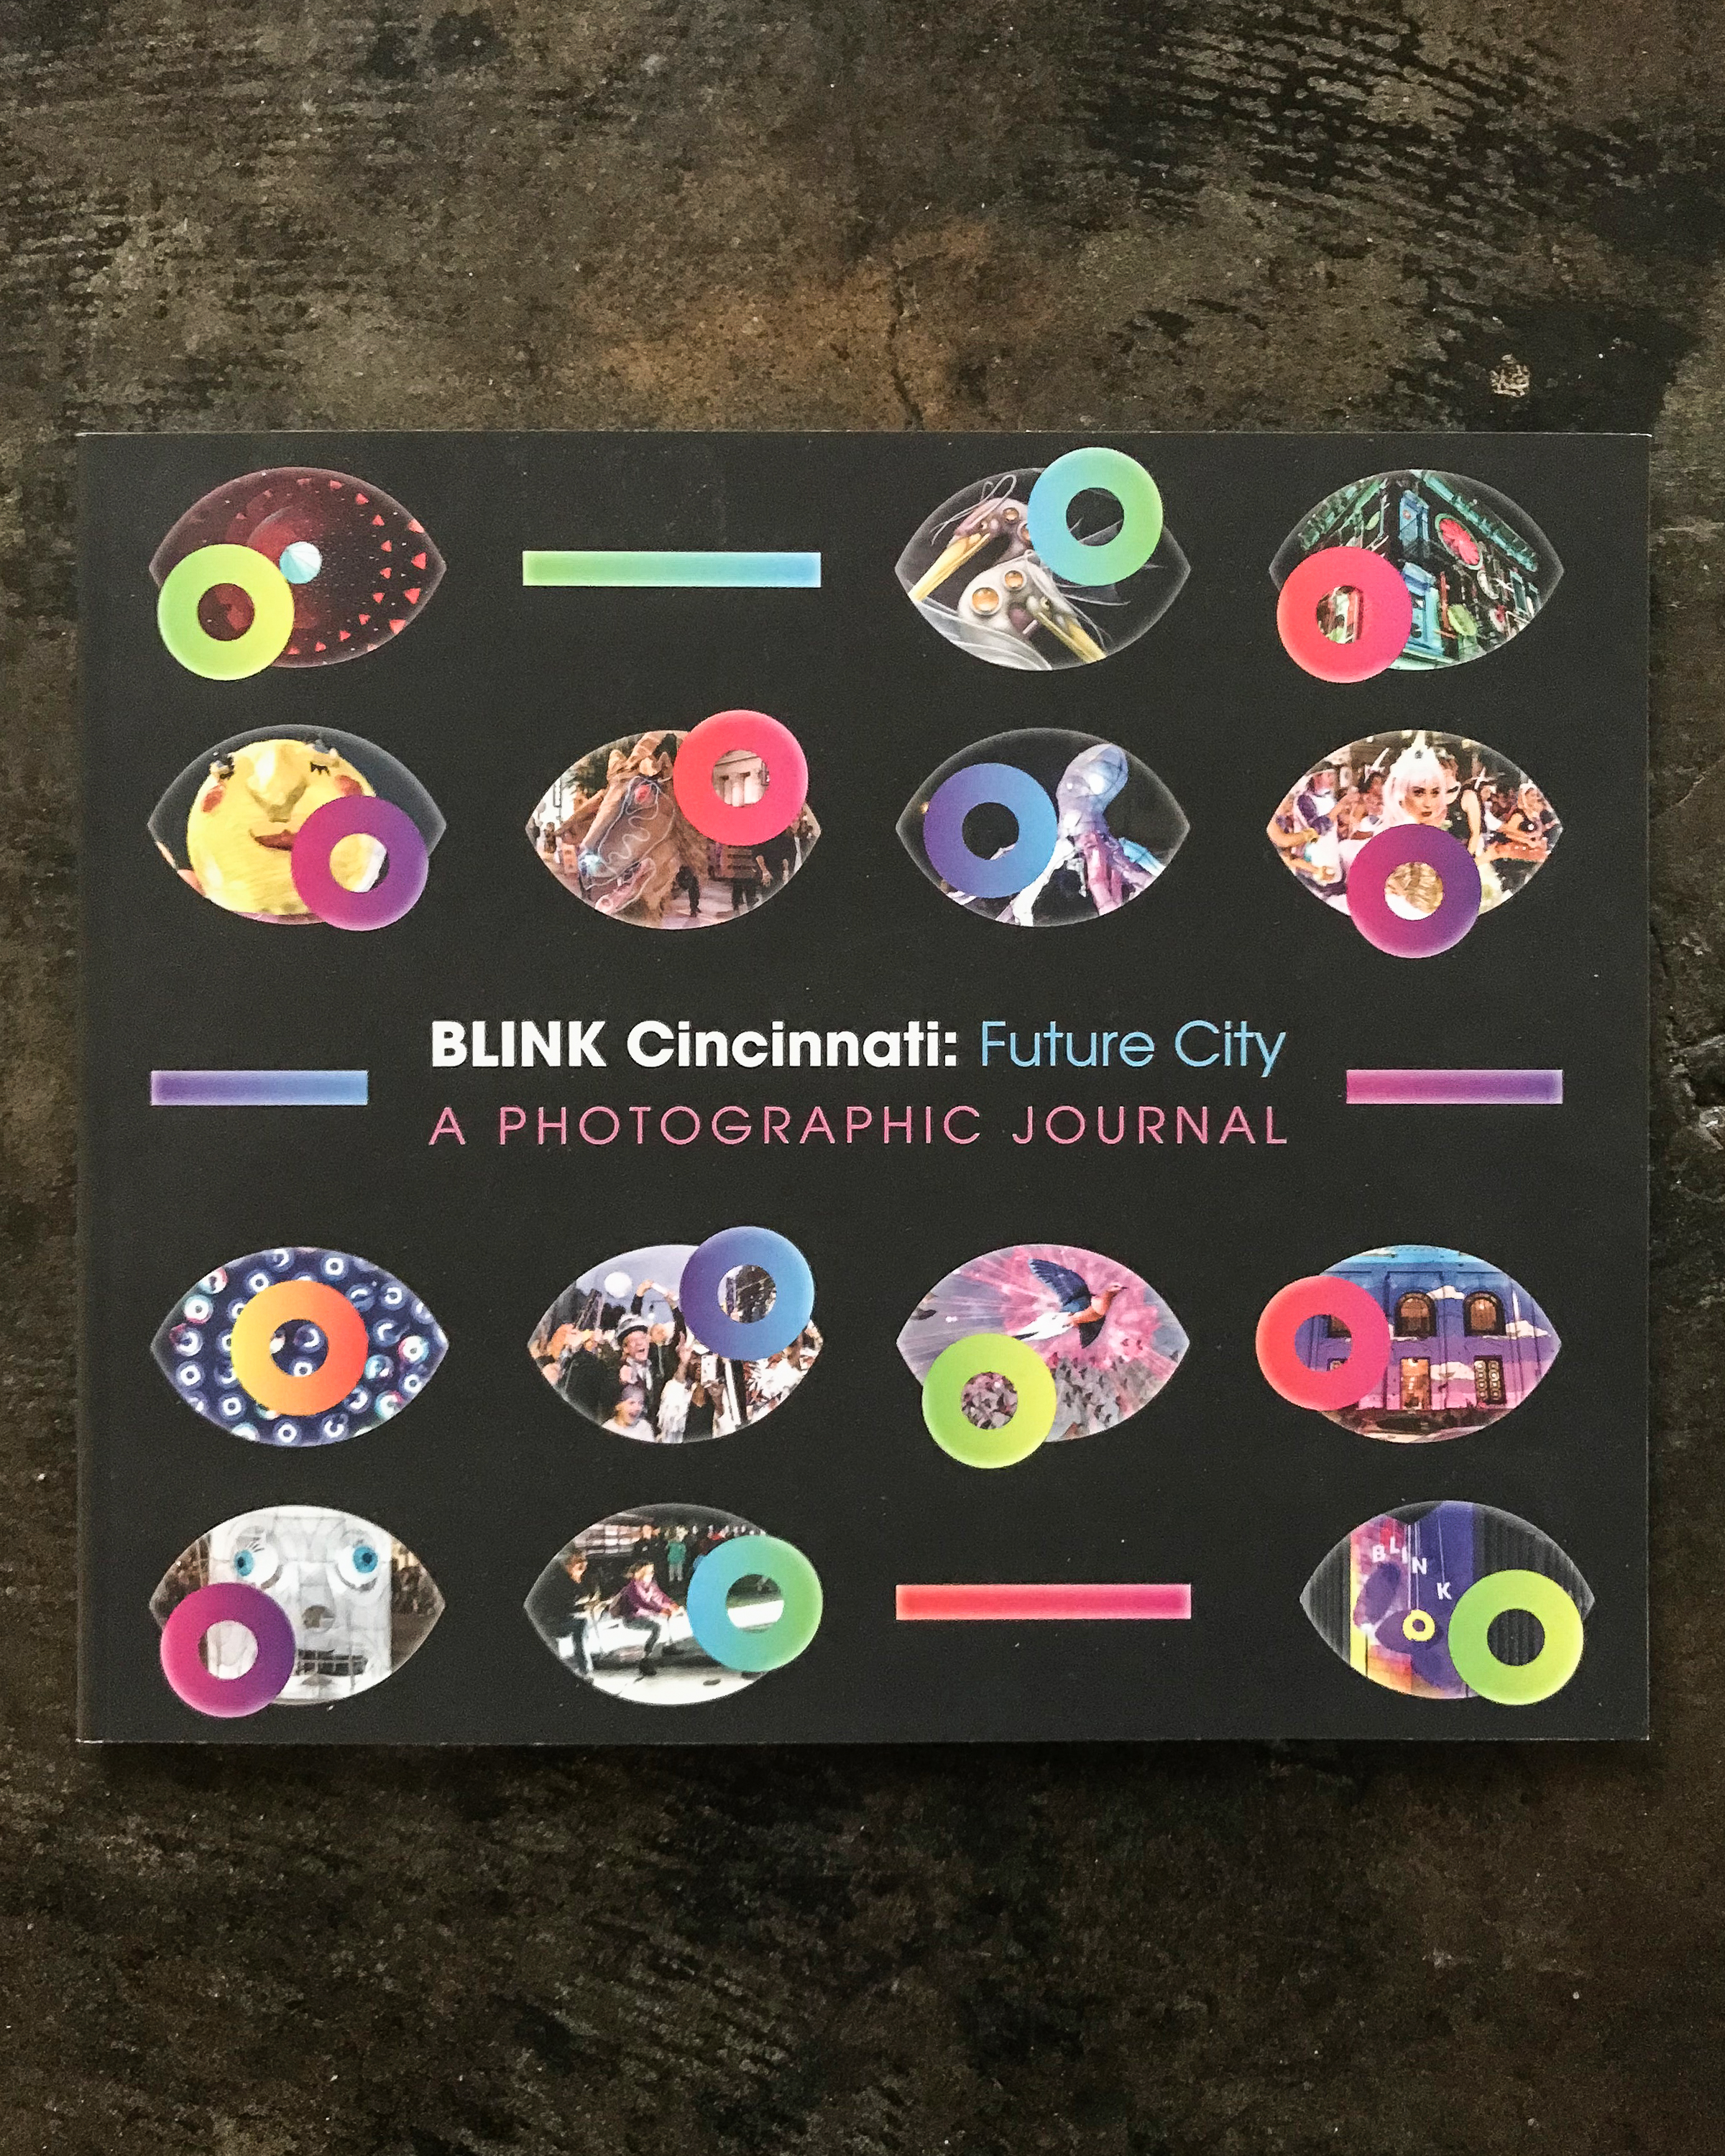 Cincinnati USA Regional Chamber Book - 'BLINK Cincinnati: Future City - A Photographic Journal' is the official commemorative book of the event of the same name. Several of my photos from the 4-day celebration were included in the book.